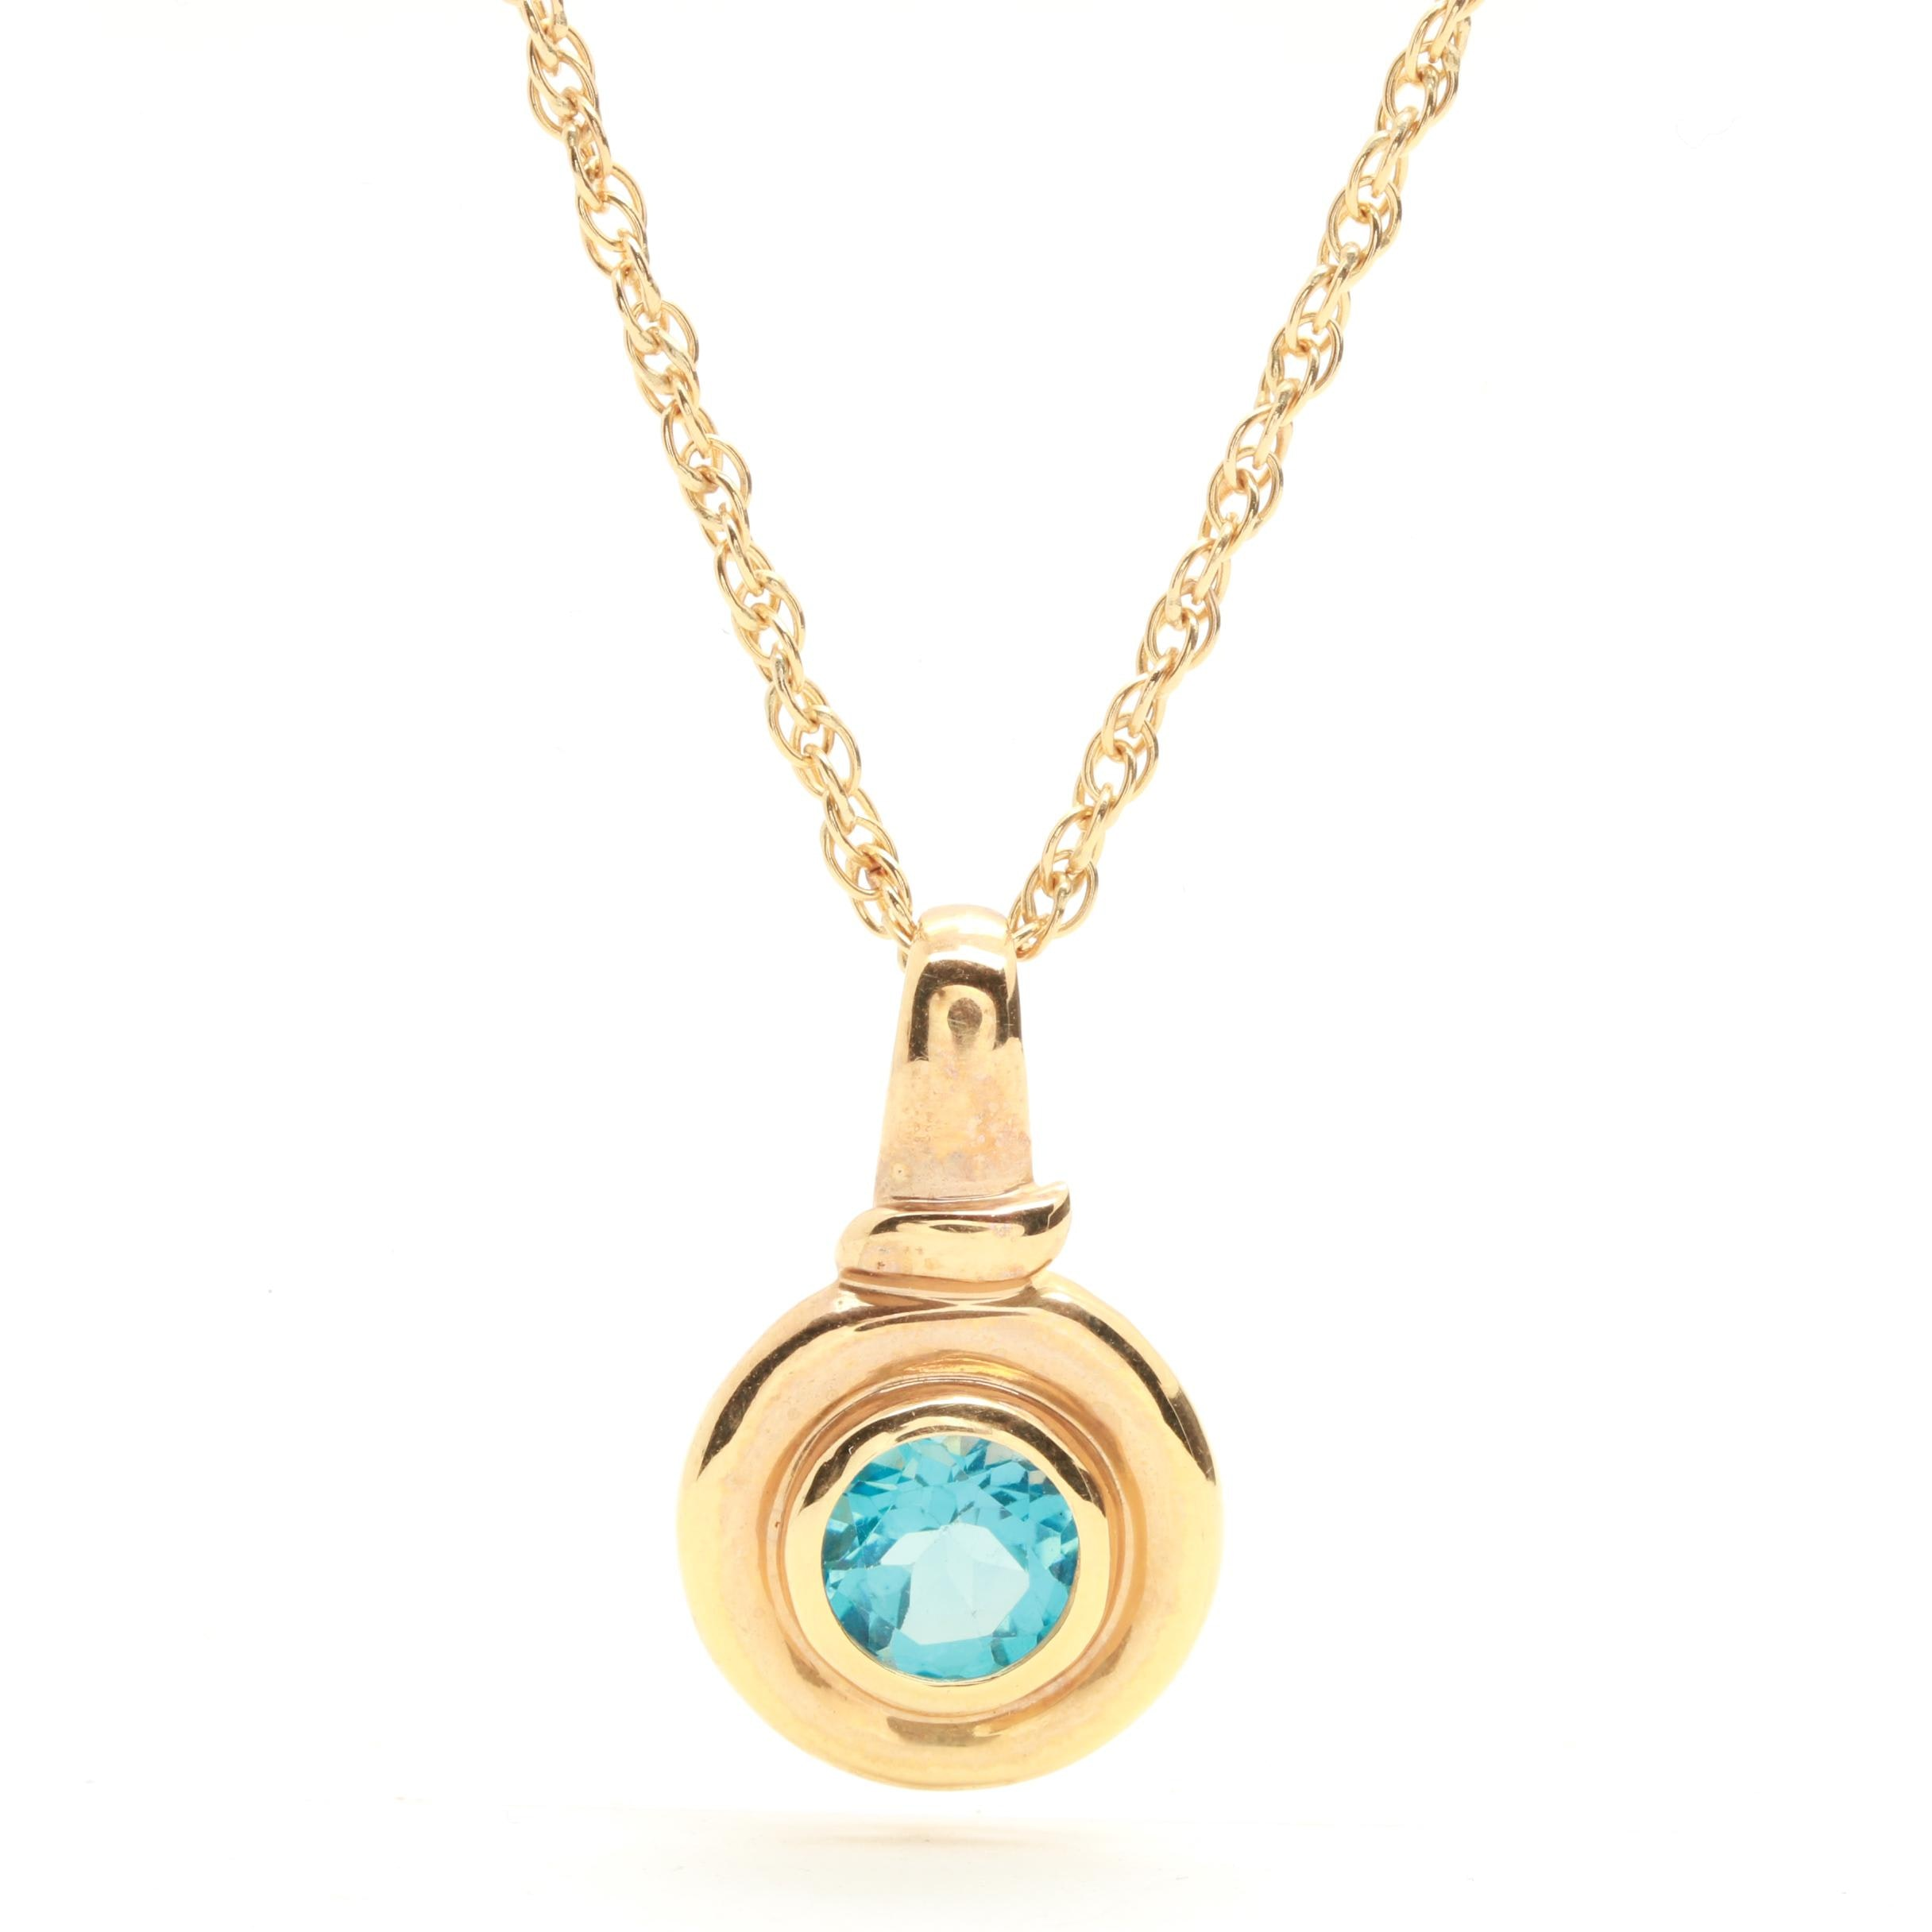 14K Yellow Gold 1.90 CT Blue Topaz Necklace